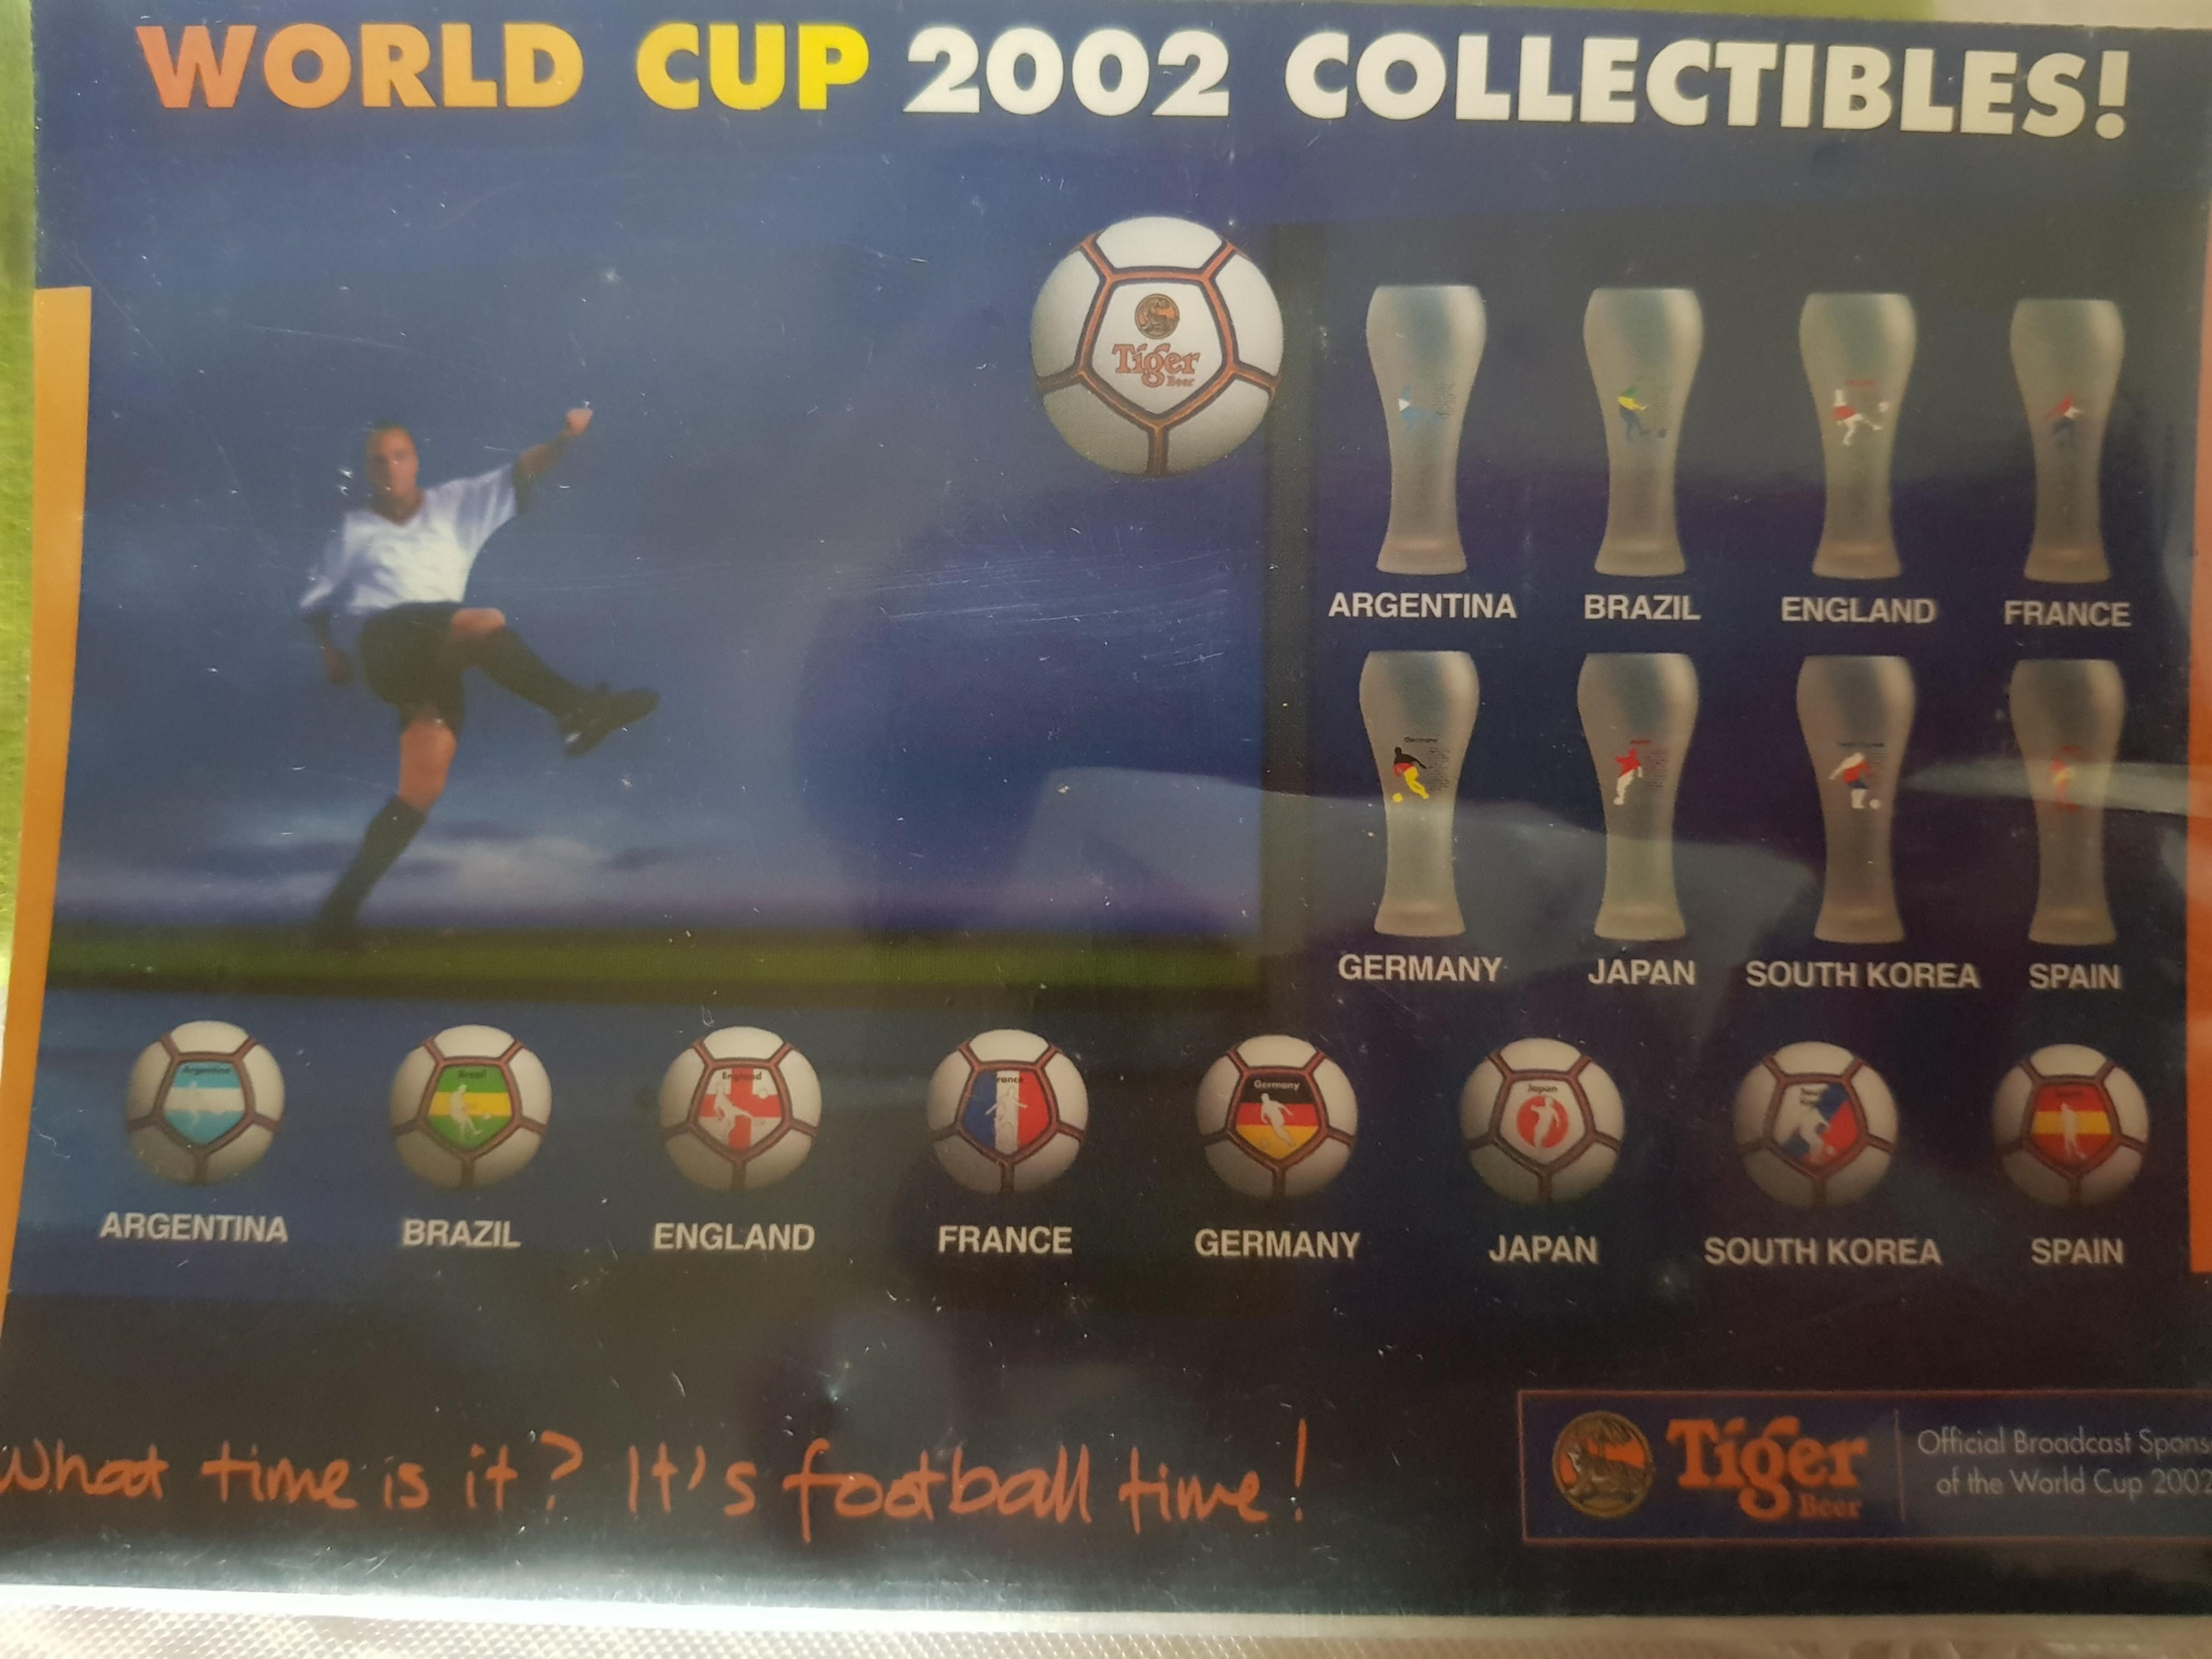 World Cup 2002 Collectibles Beer Cup